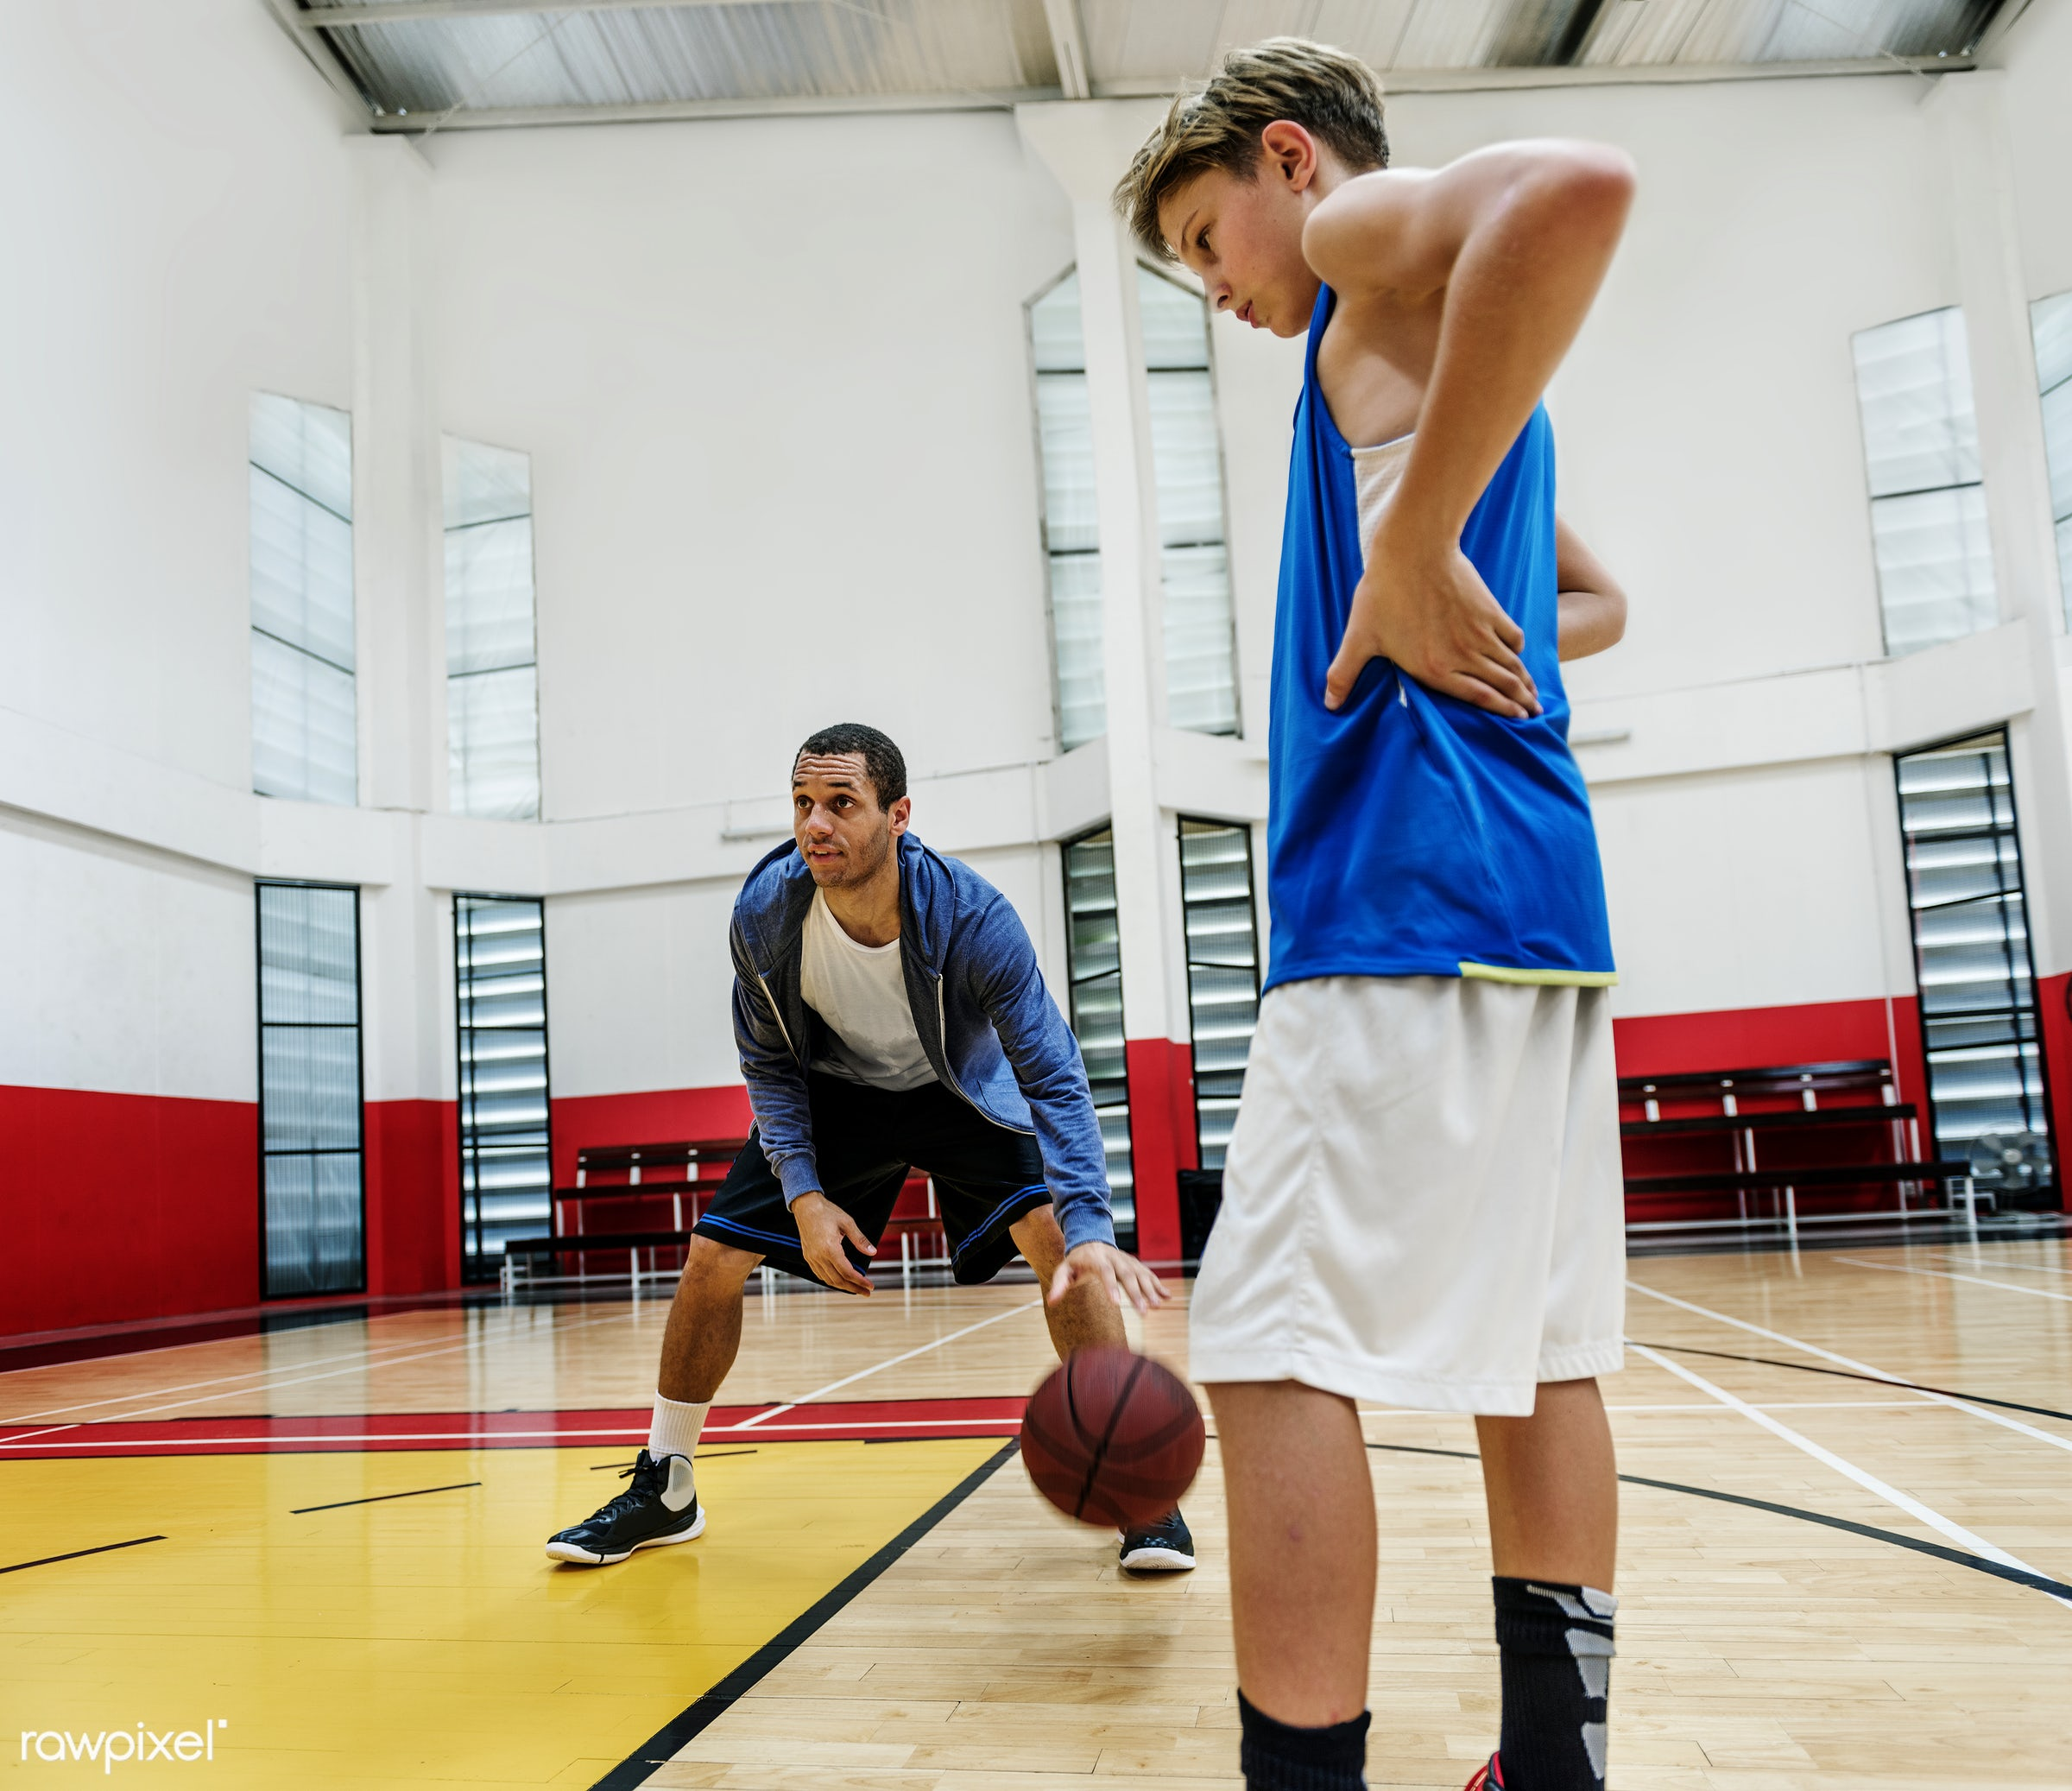 activity, basketball, boy, coach, coaching, court, exercise, friends, game, man, play, player, practice, sport, strength,...